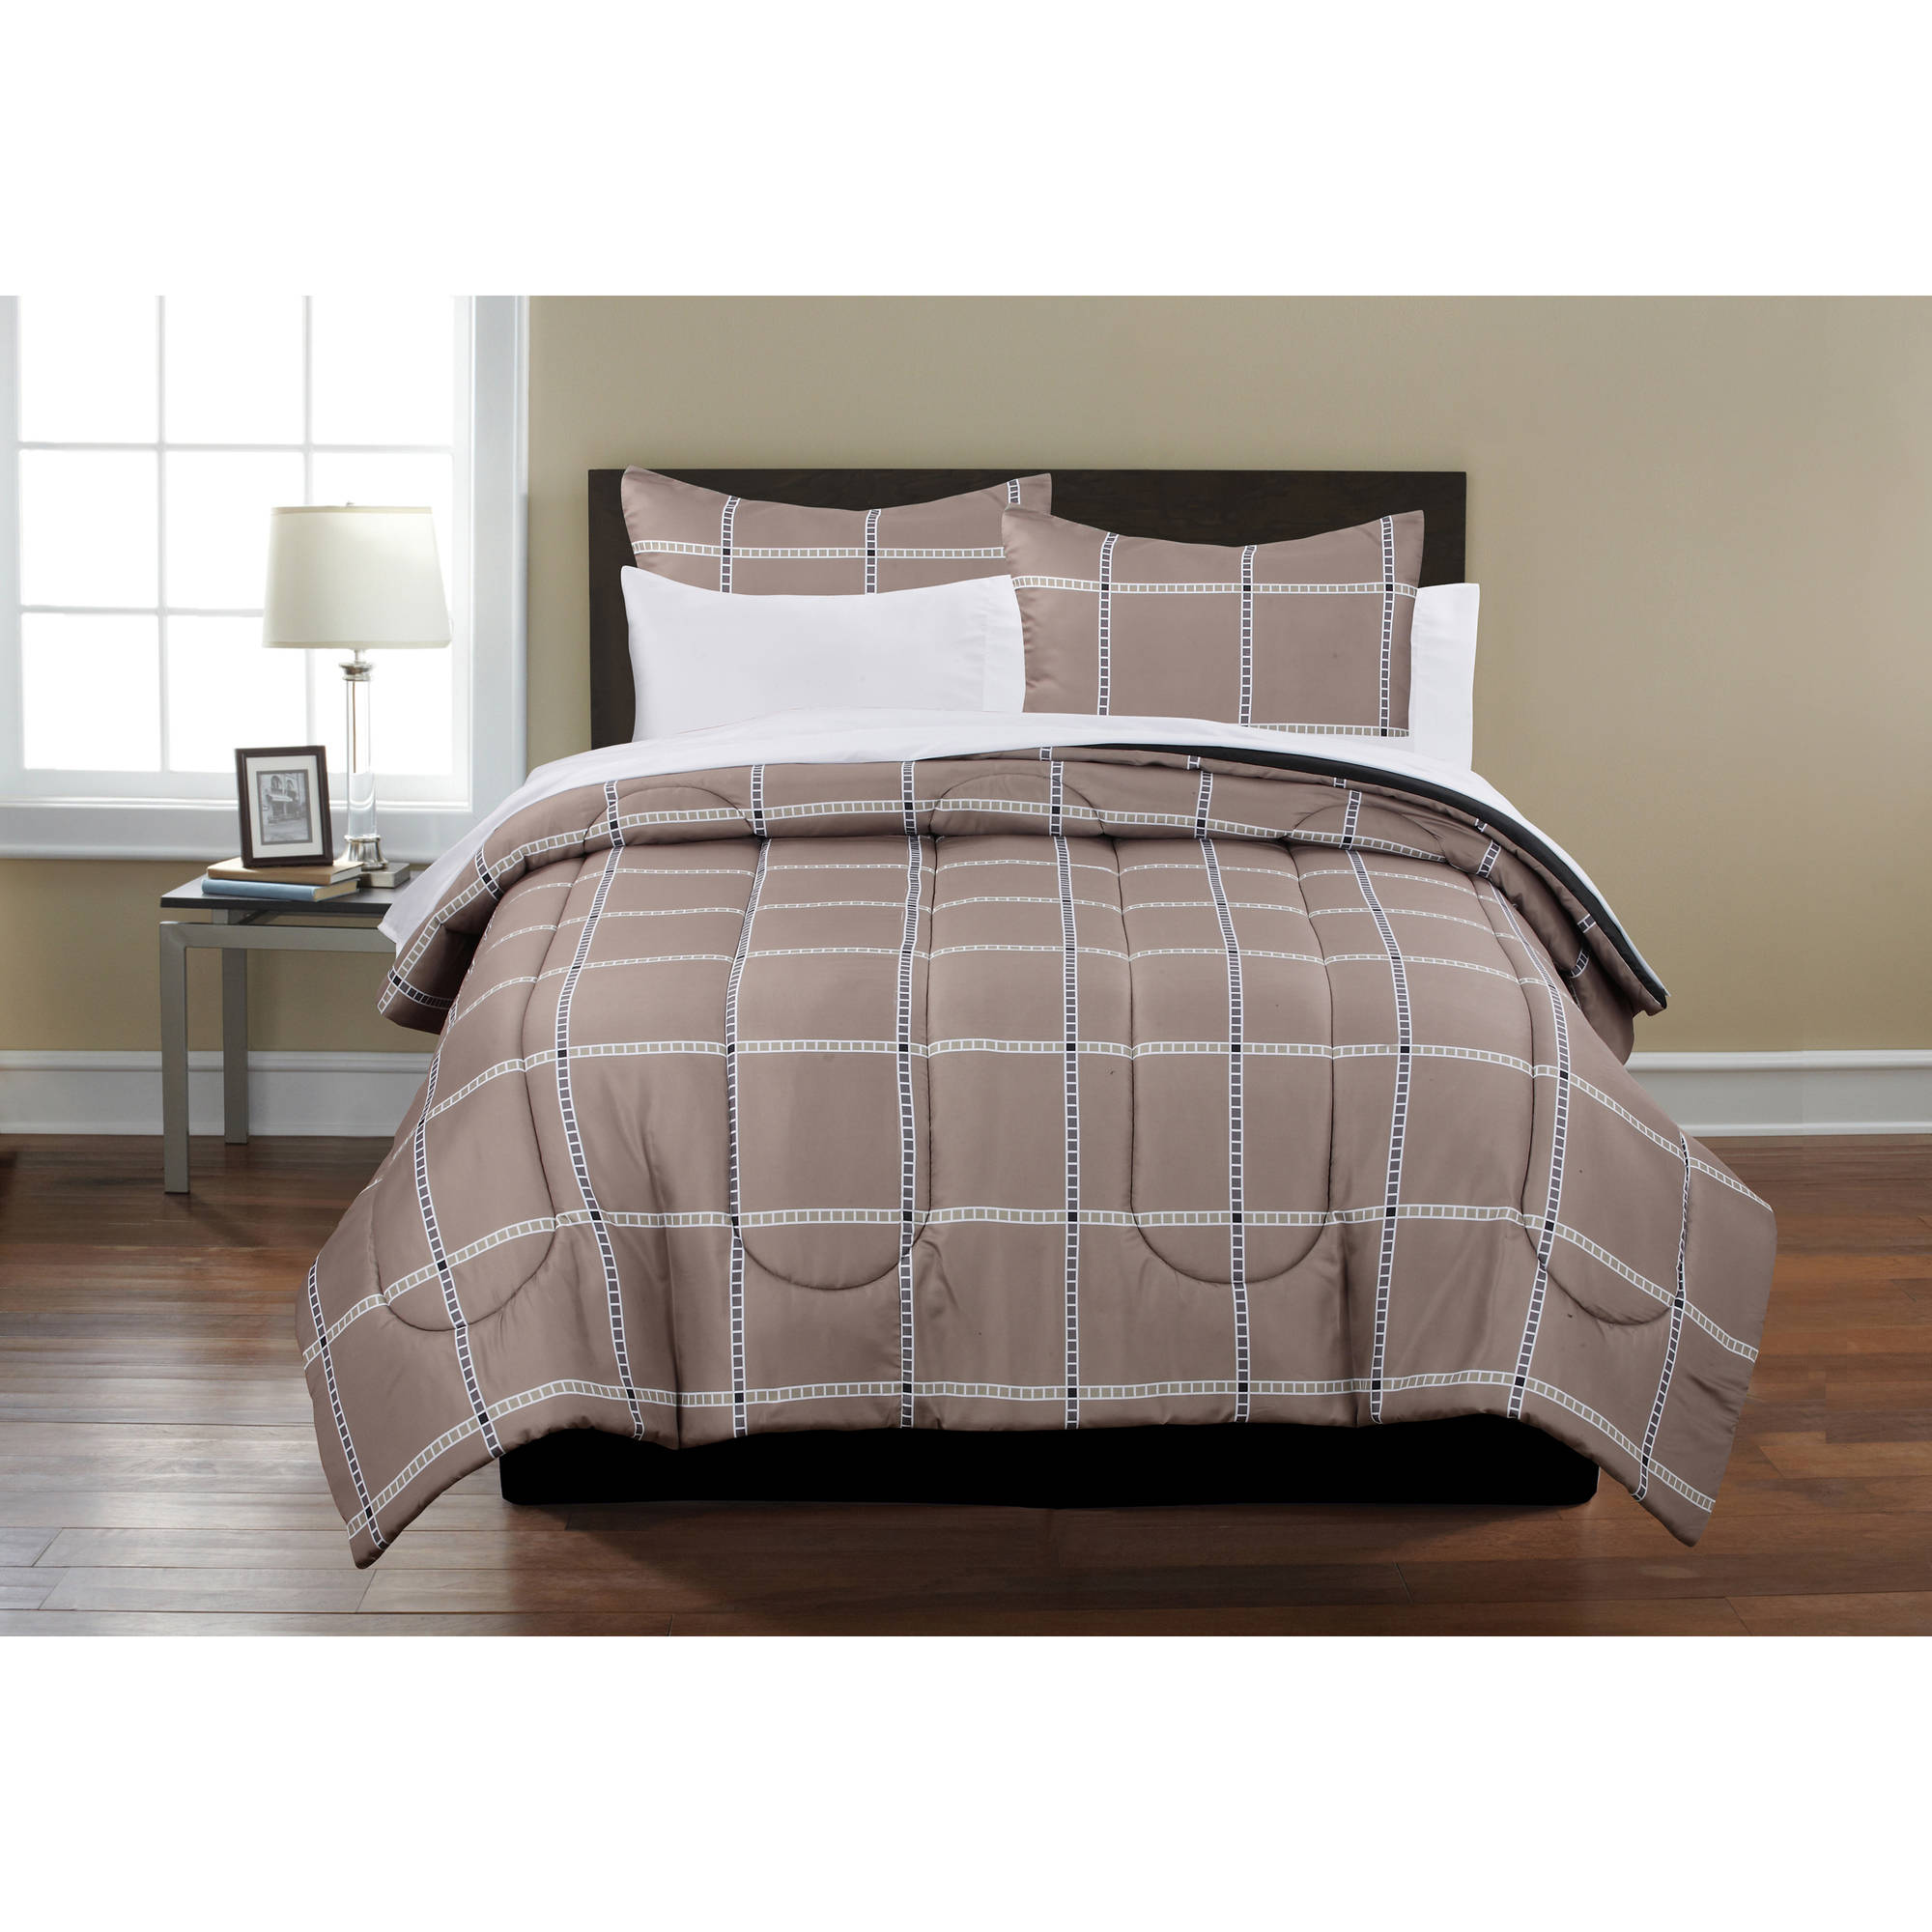 lovely Complete Bed In A Bag Sets Part - 8: Mainstays Beige Plaid Bed in a Bag Coordinating Bedding Set - Walmart.com